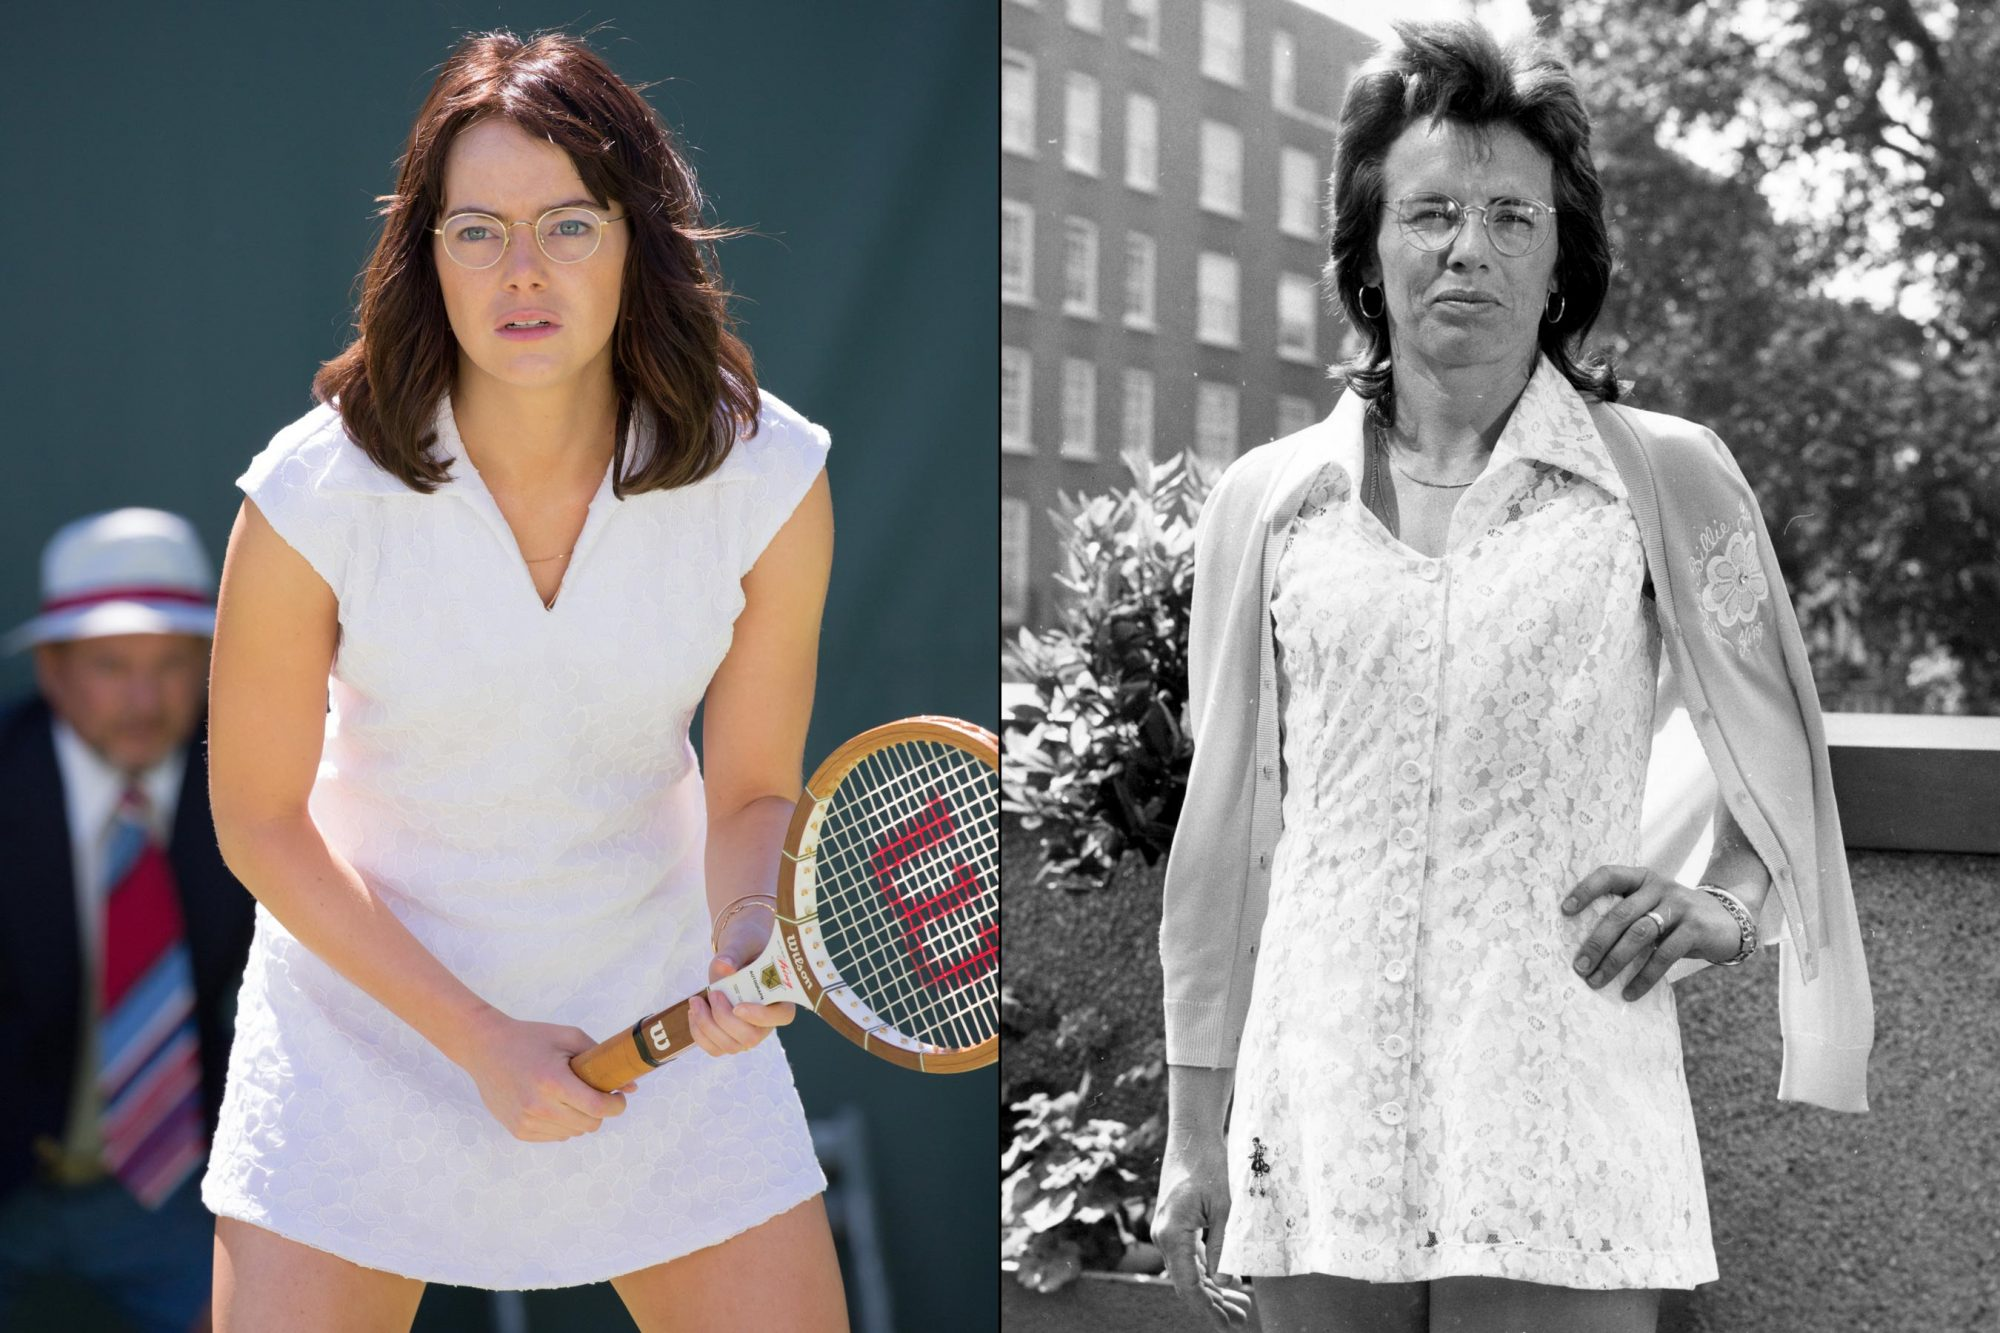 Emma Stone as Billie Jean King (Battle of the Sexes)